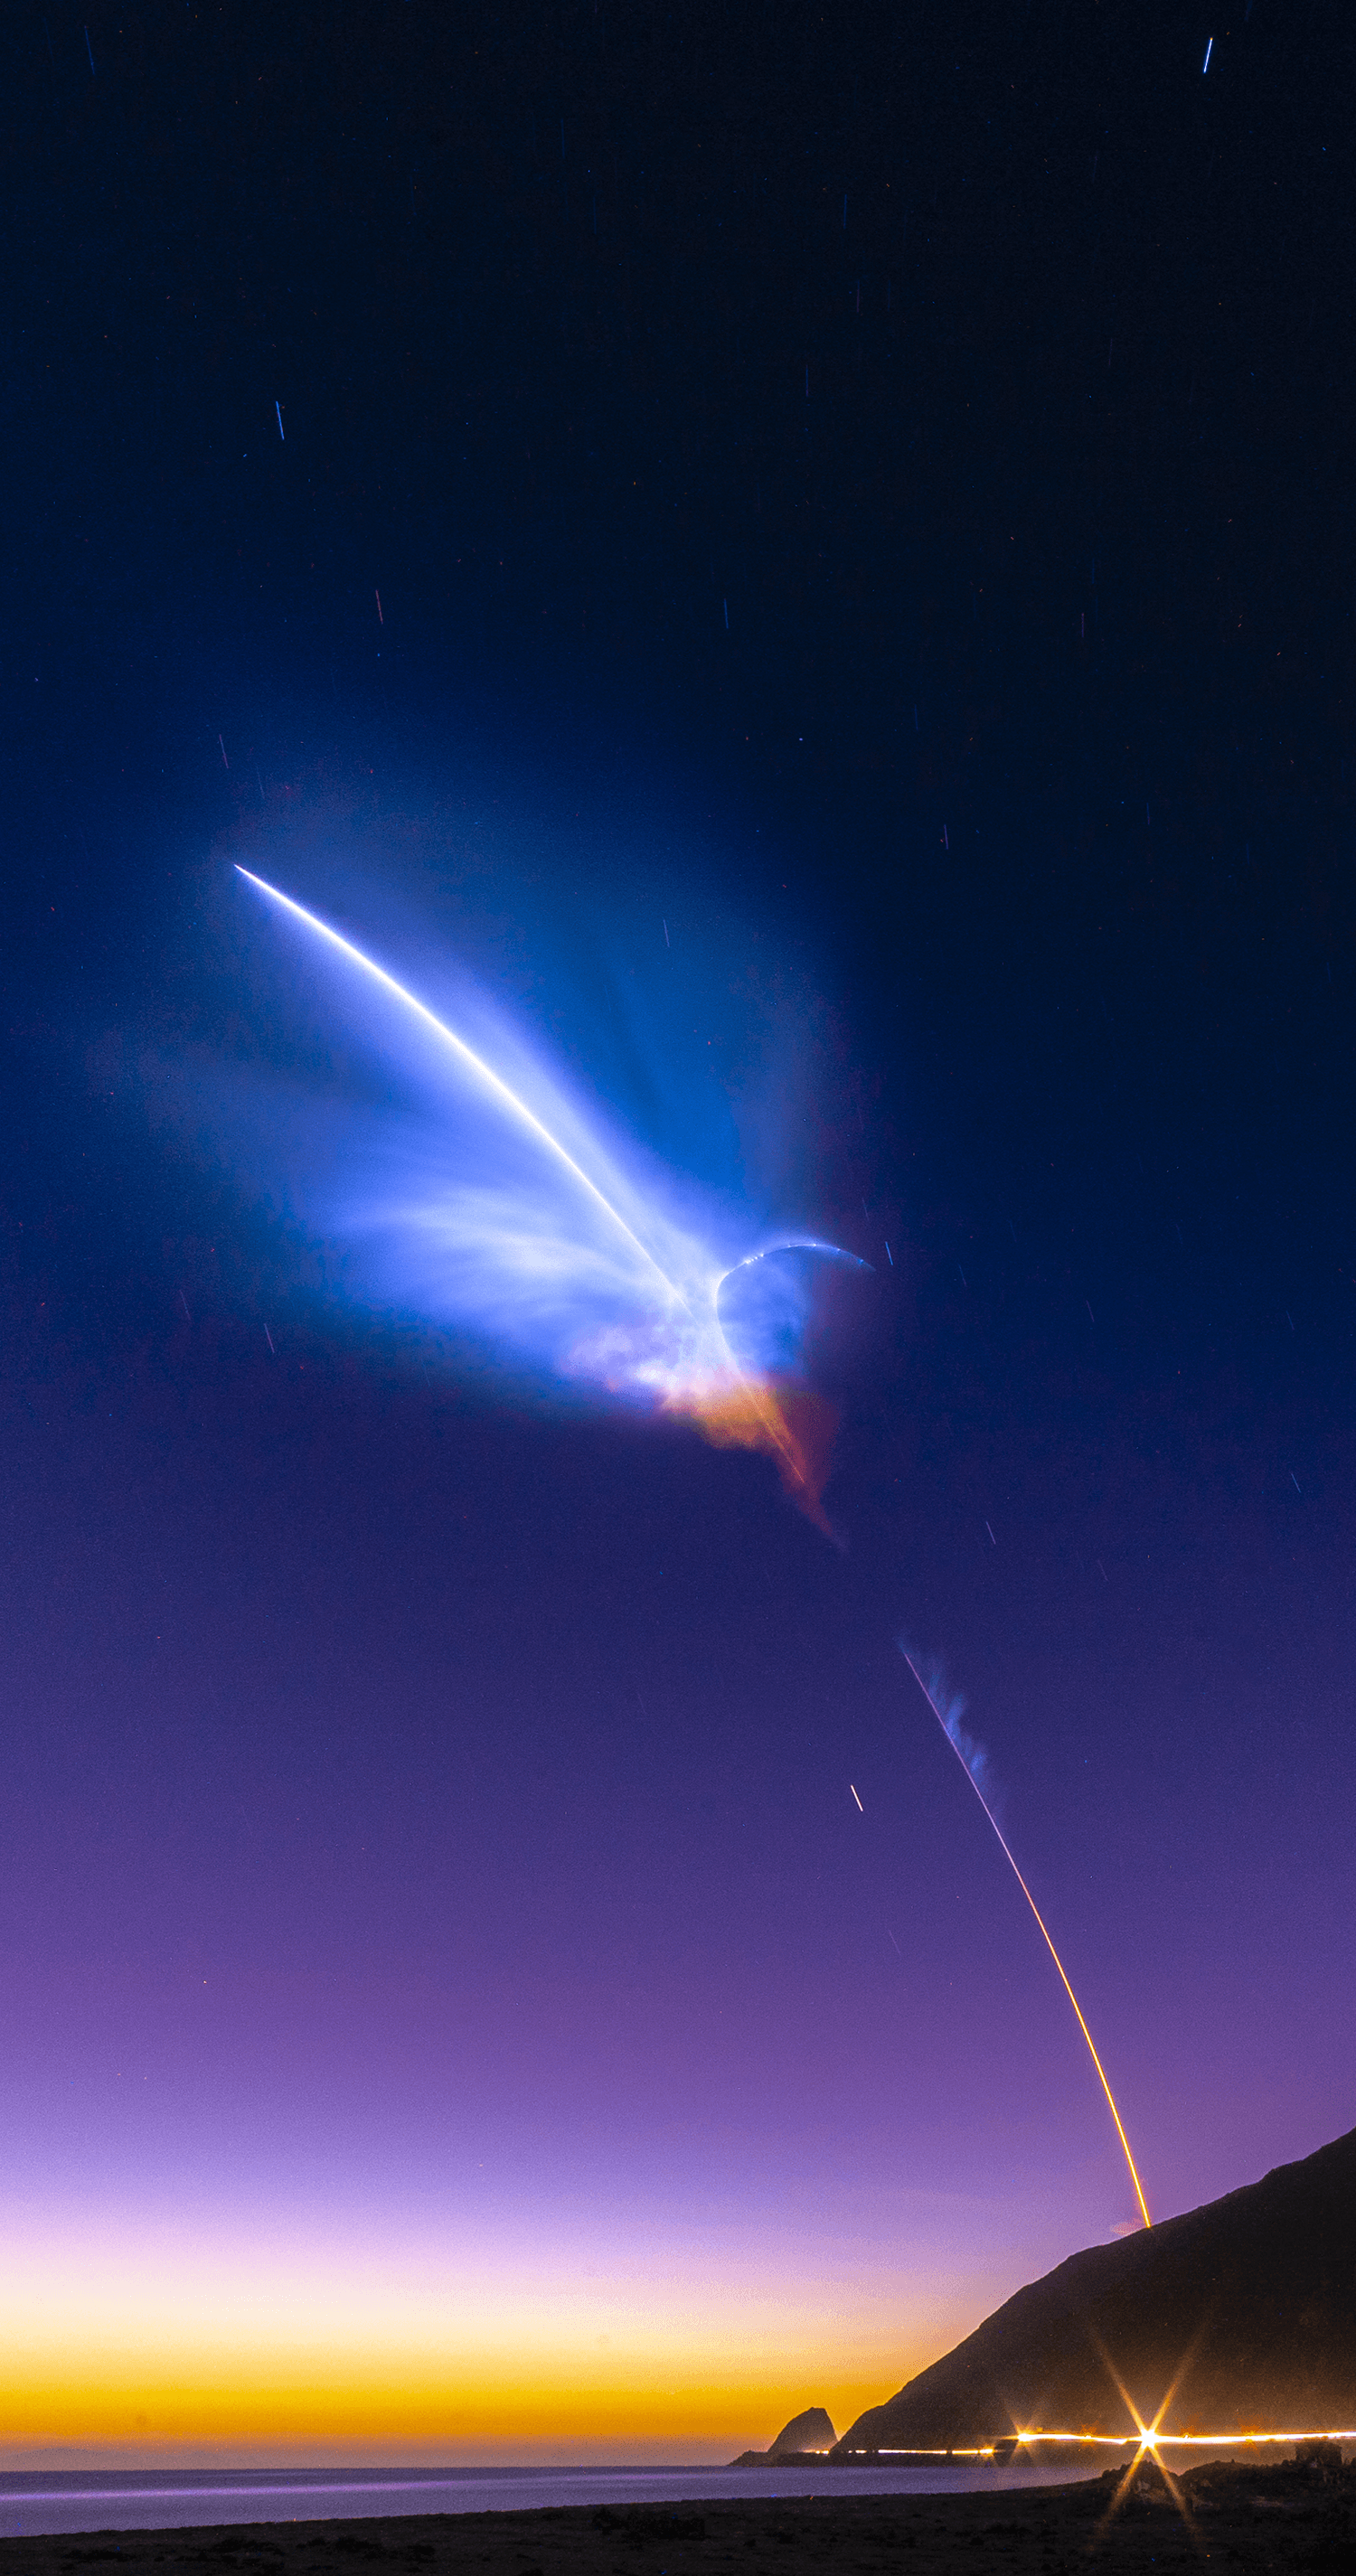 Space X Iphone Wallpapers Wallpaper Cave